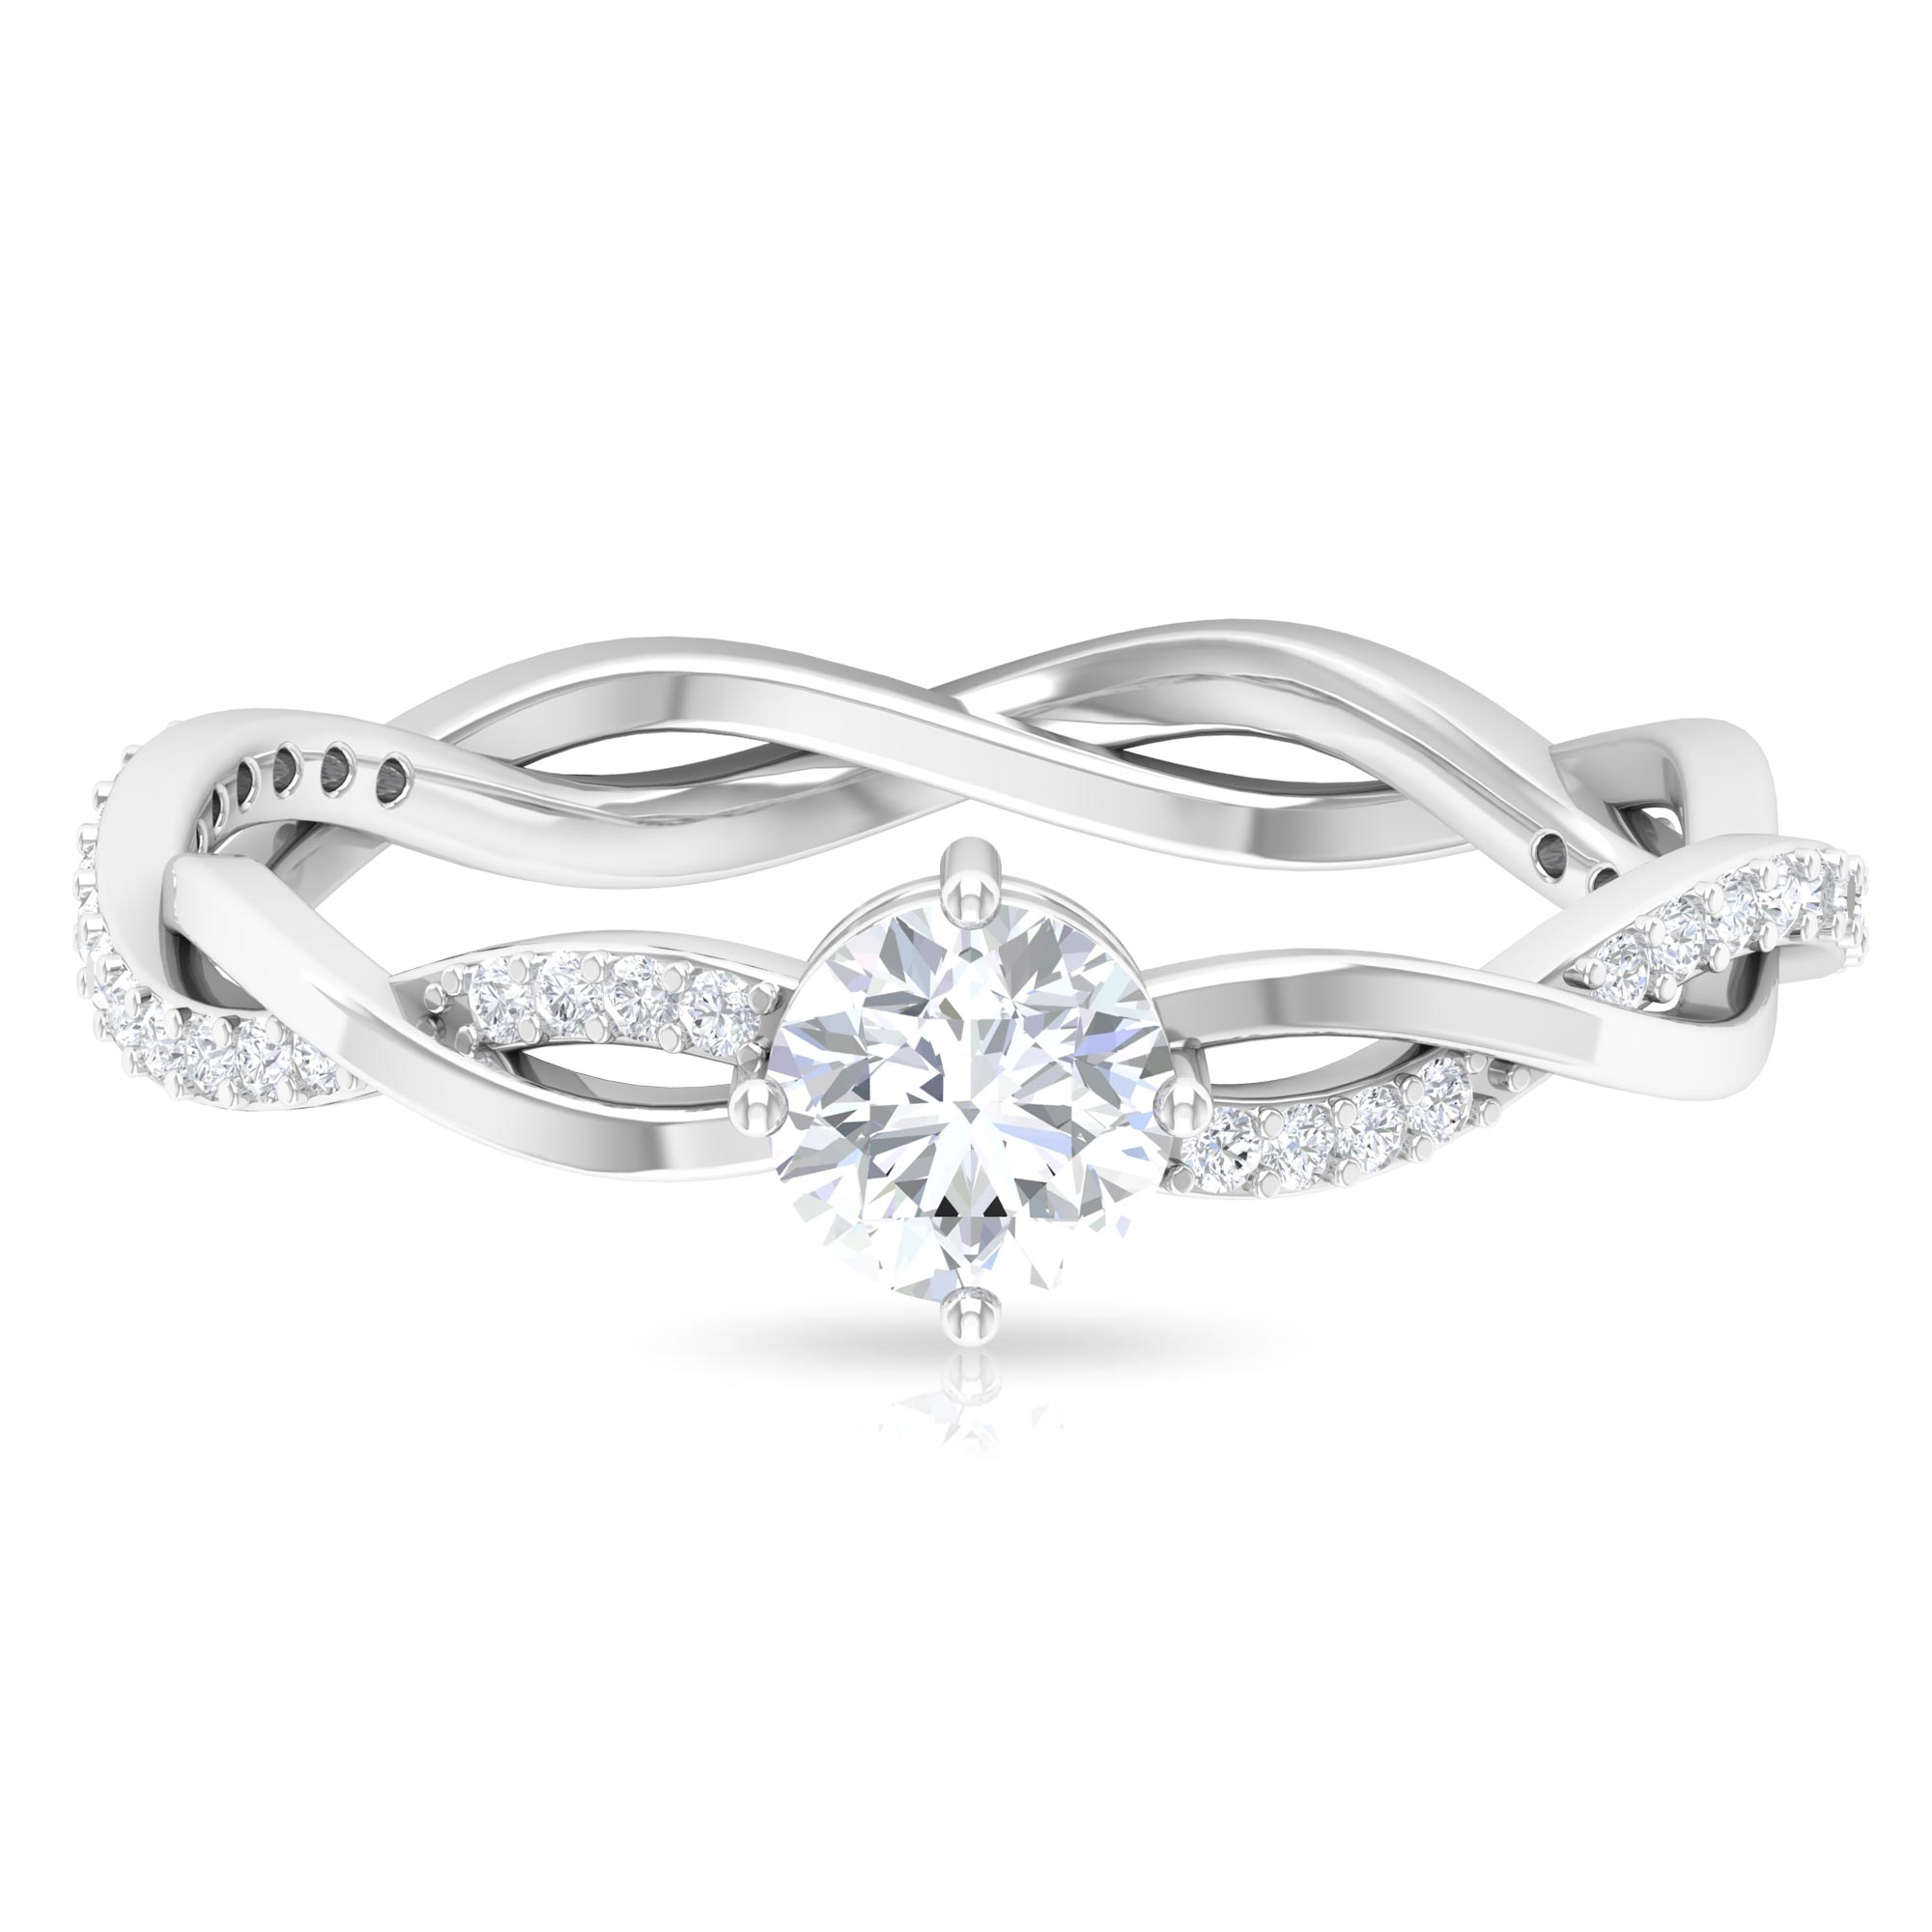 5 MM Round Cut Diamond Solitaire Braided Ring in Diagonal 4 Prong Set